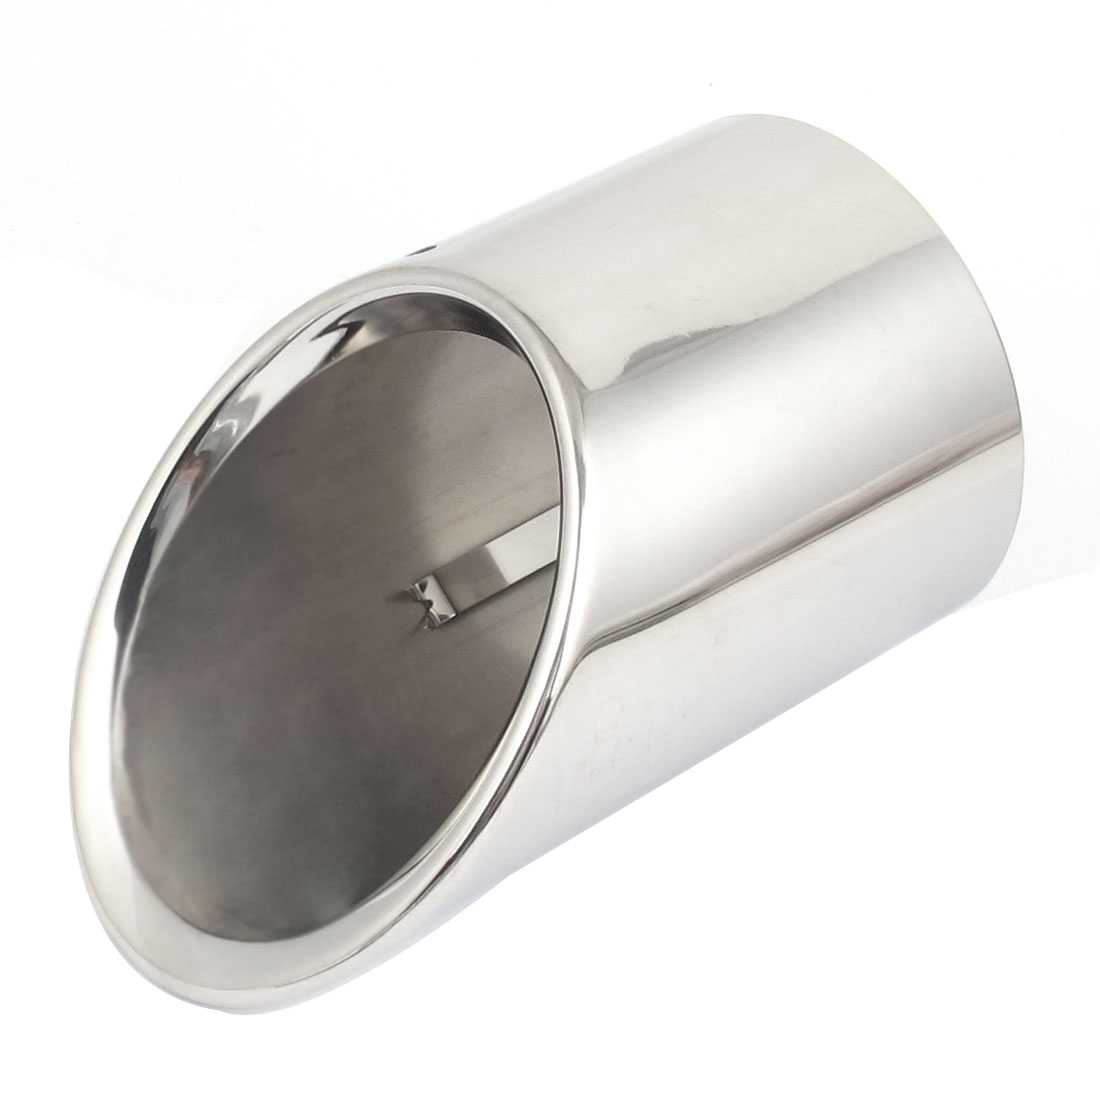 "3.8"" Inlet Dia Stainless Steel Exhaust Pipe Tail Muffler Tip for Malibu"